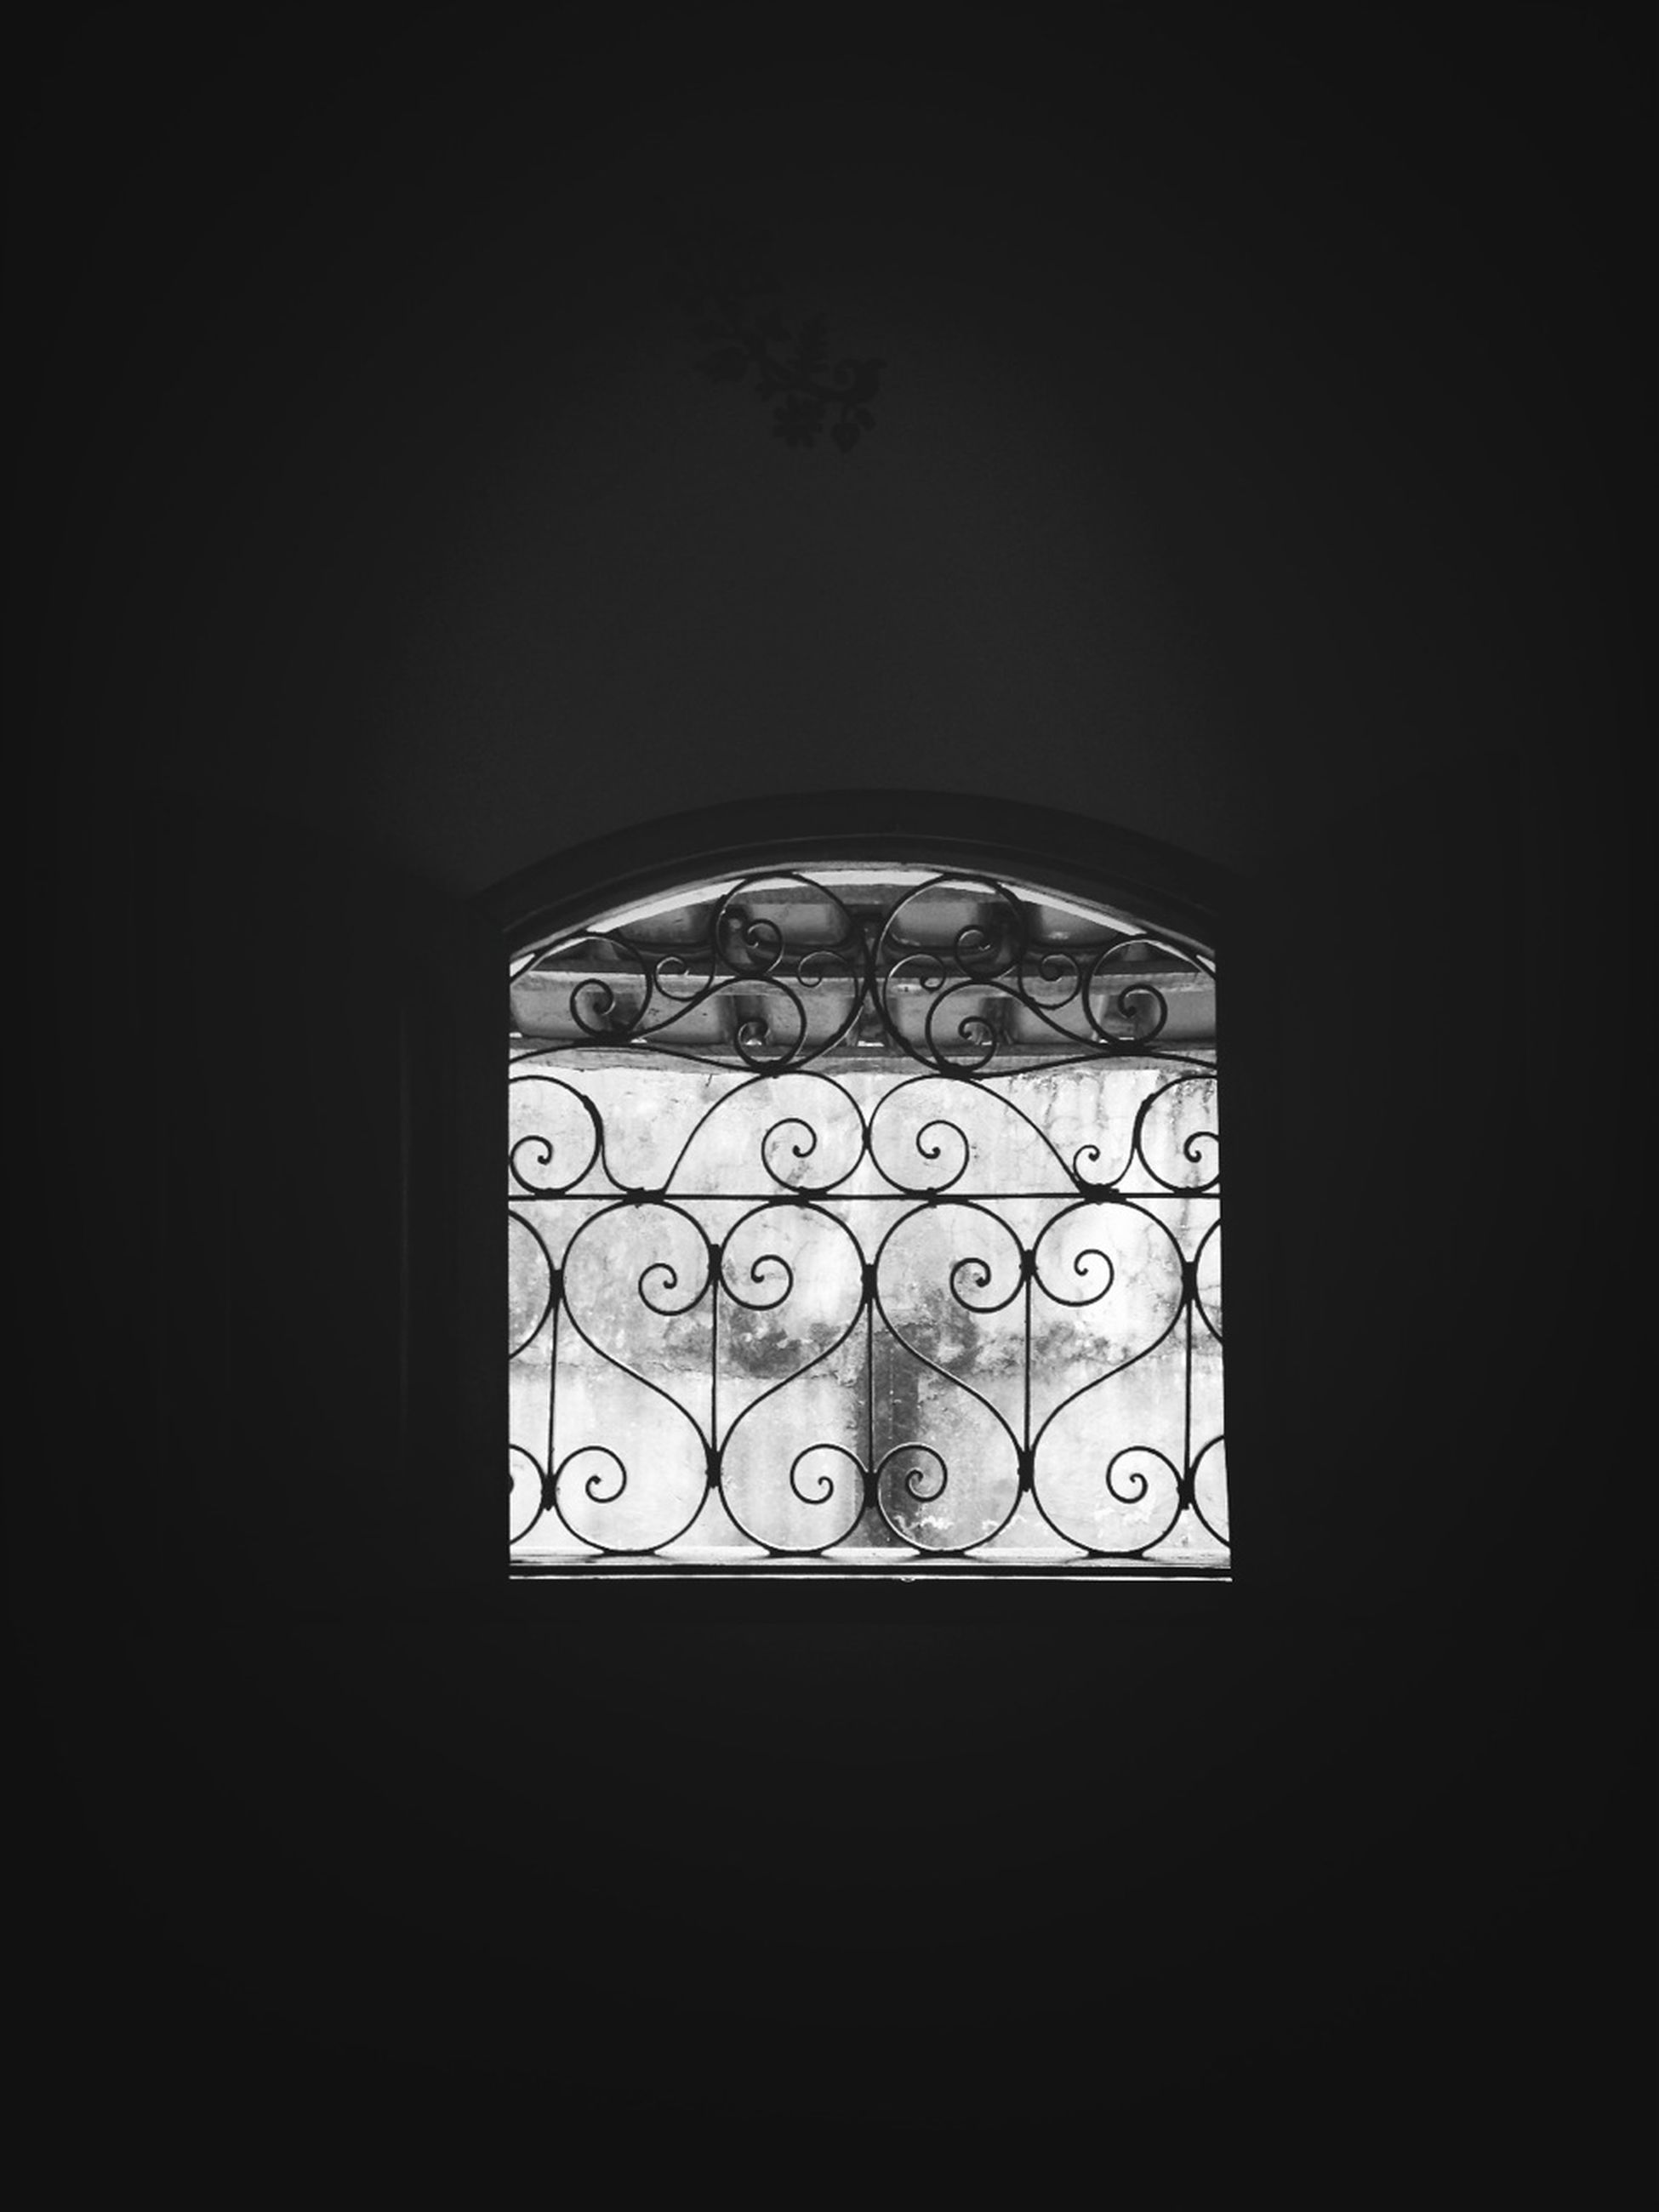 indoors, window, dark, design, built structure, pattern, architecture, copy space, arch, glass - material, closed, no people, stained glass, geometric shape, transparent, wall, wall - building feature, home interior, shape, door